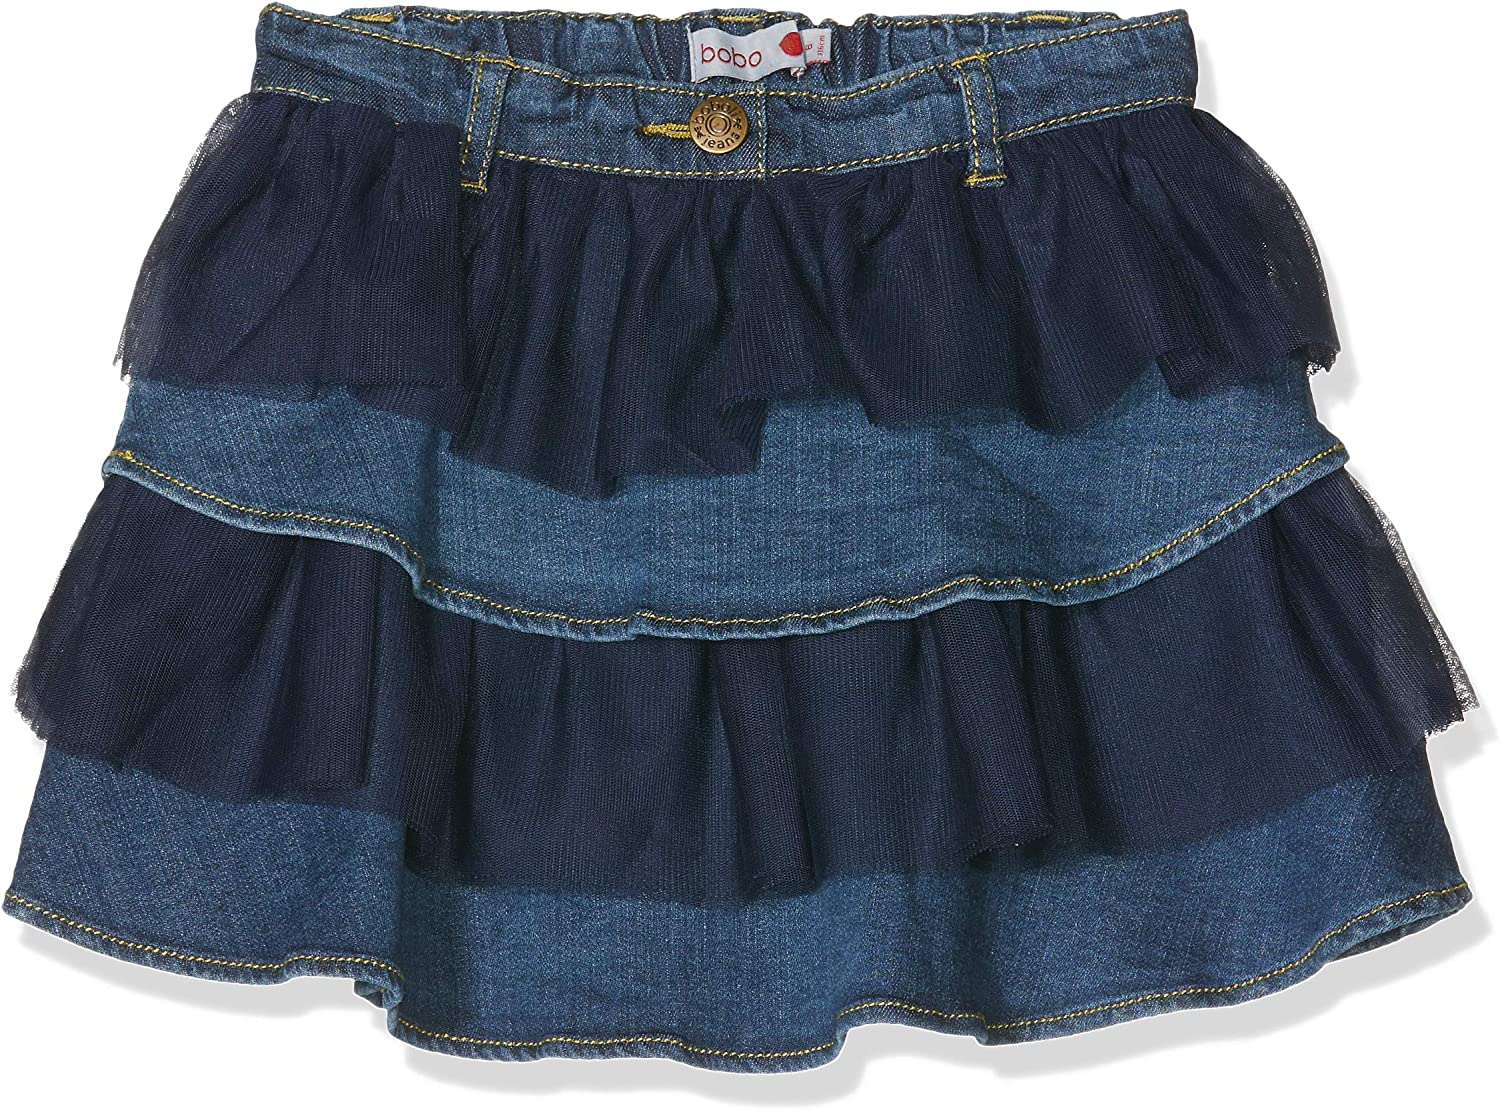 boboli Denim Ruffle Skirt For Girl Falda, Azul (Blue), 110 (Tamaño ...